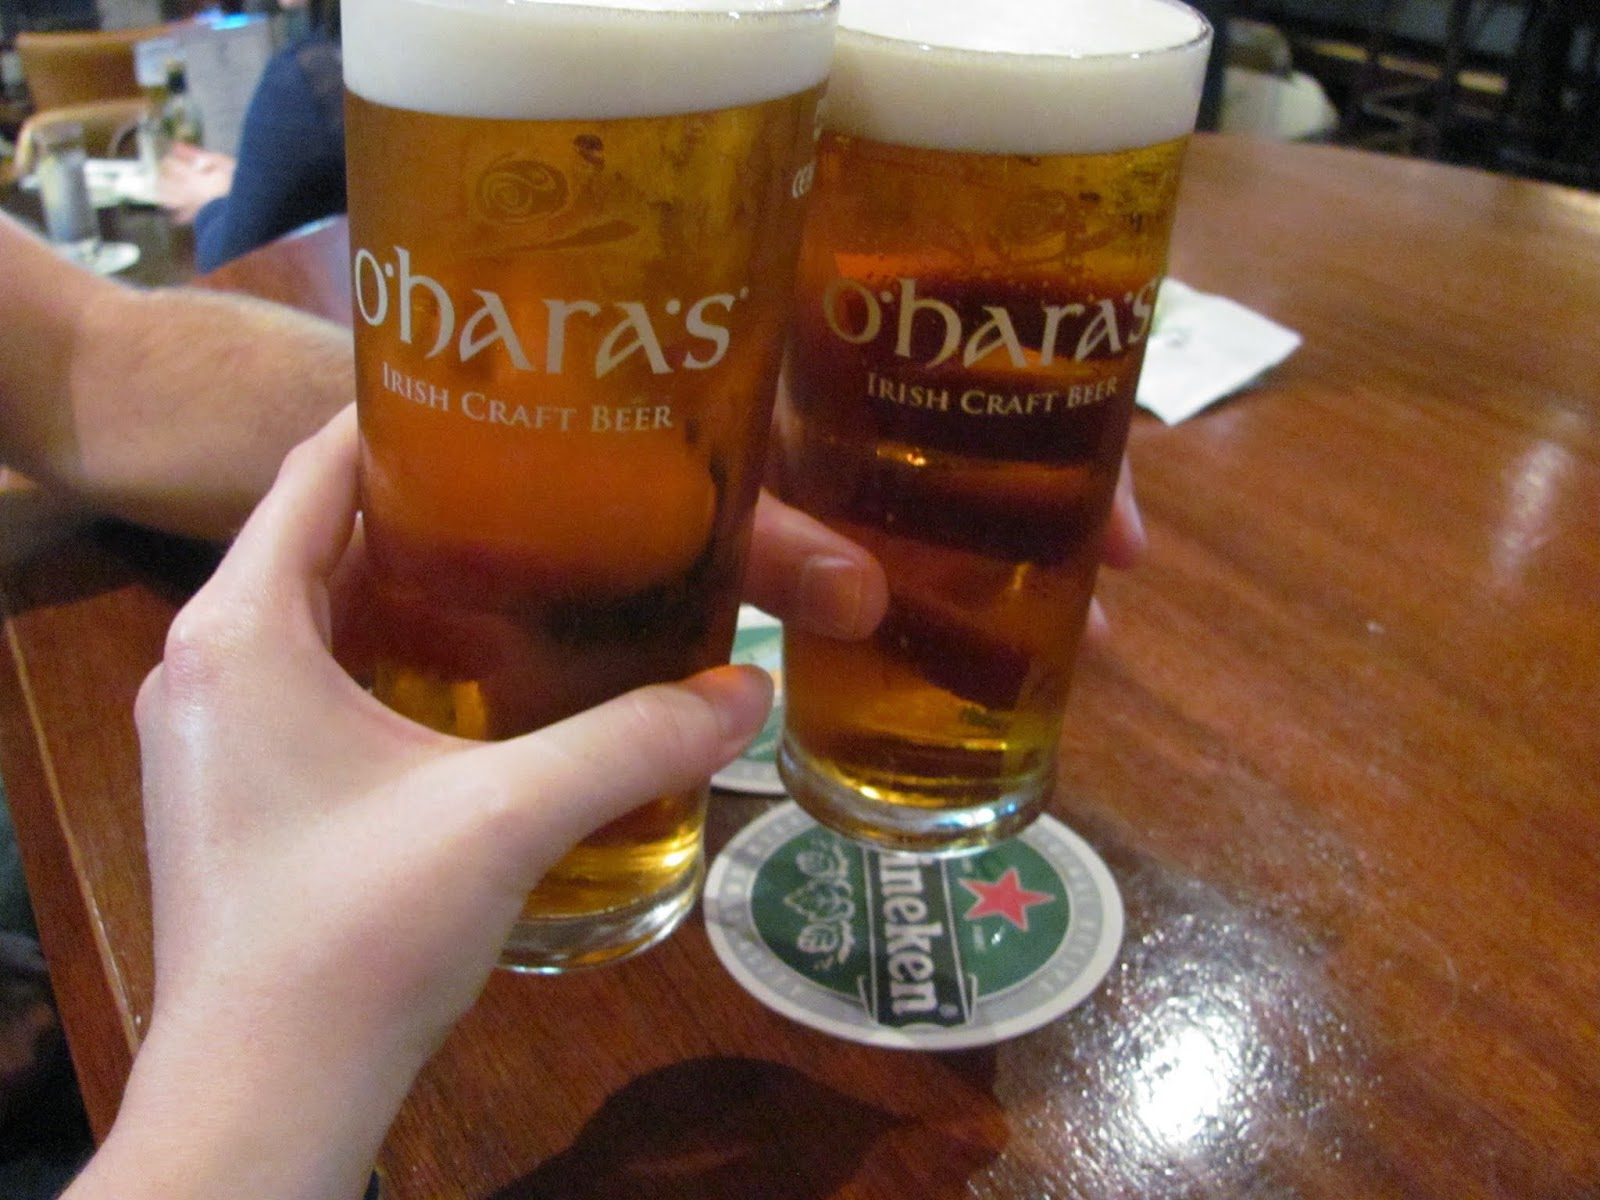 O'Hara's Pale Ale at The Goat Pub Dublin